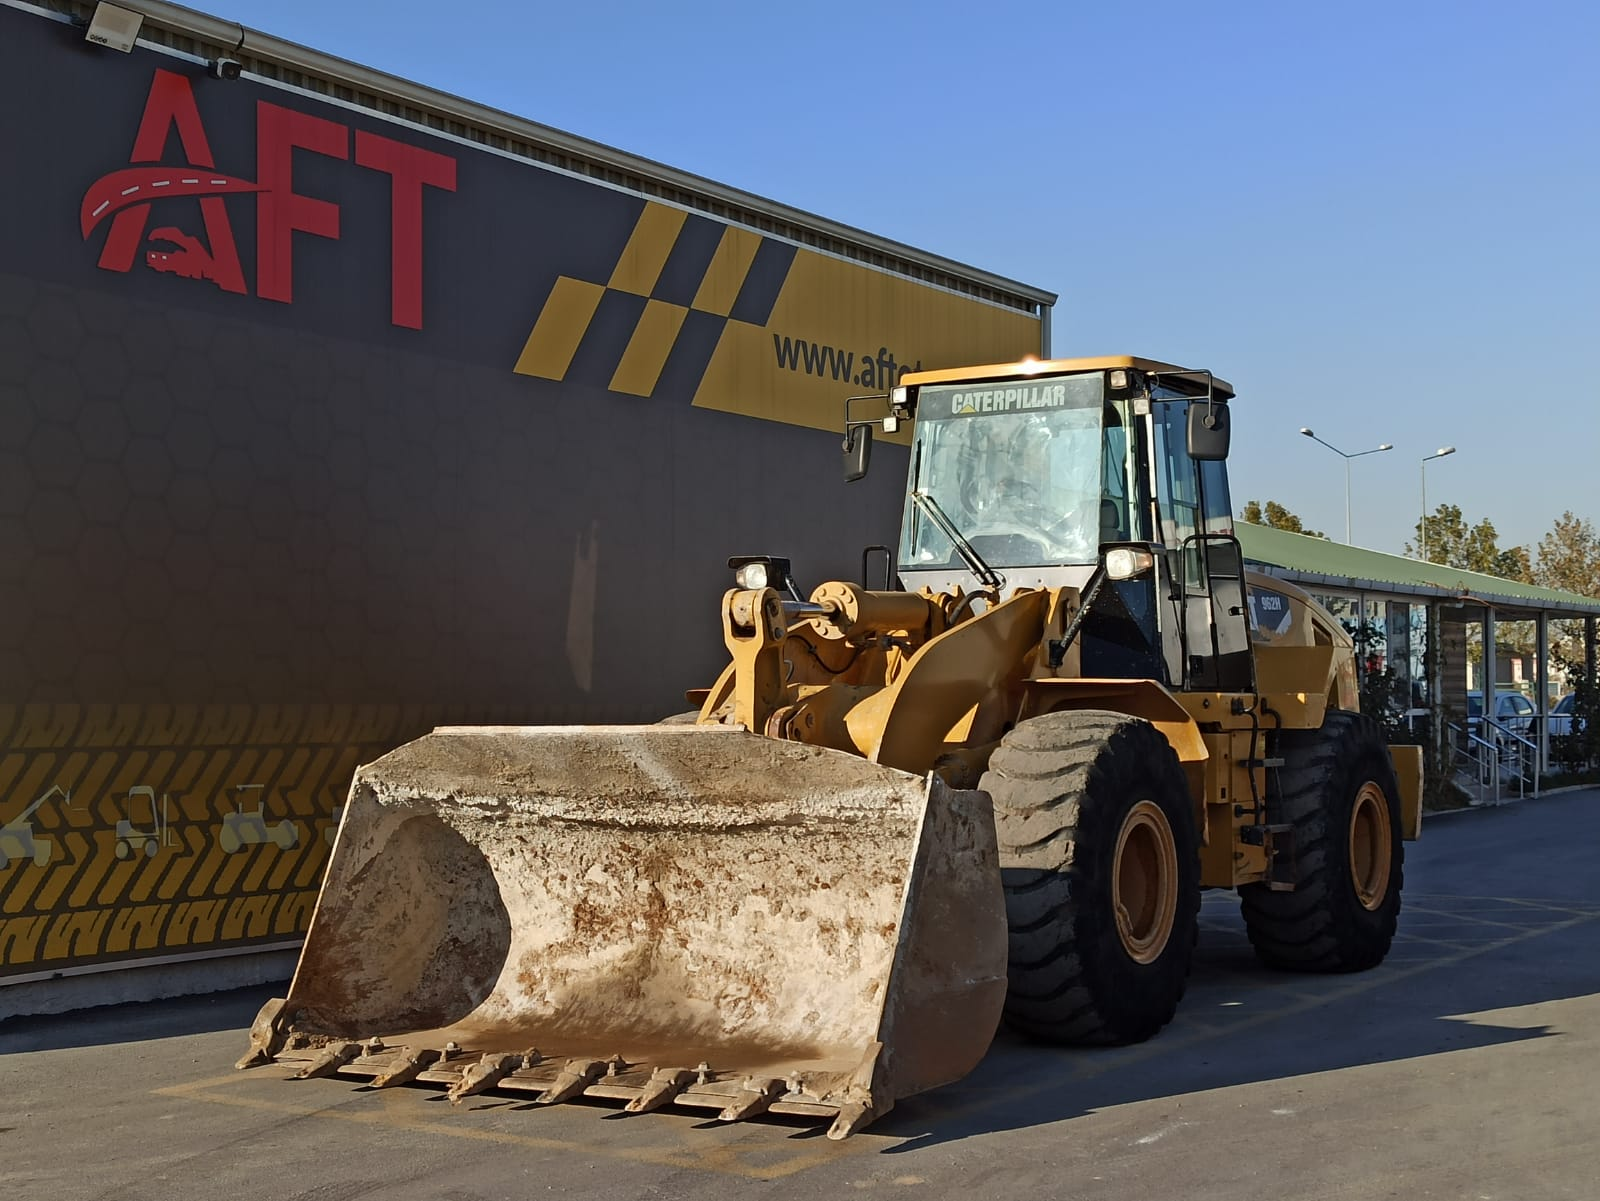 2014 MODEL CATERPİLLAR 962H WHEELED LOADER